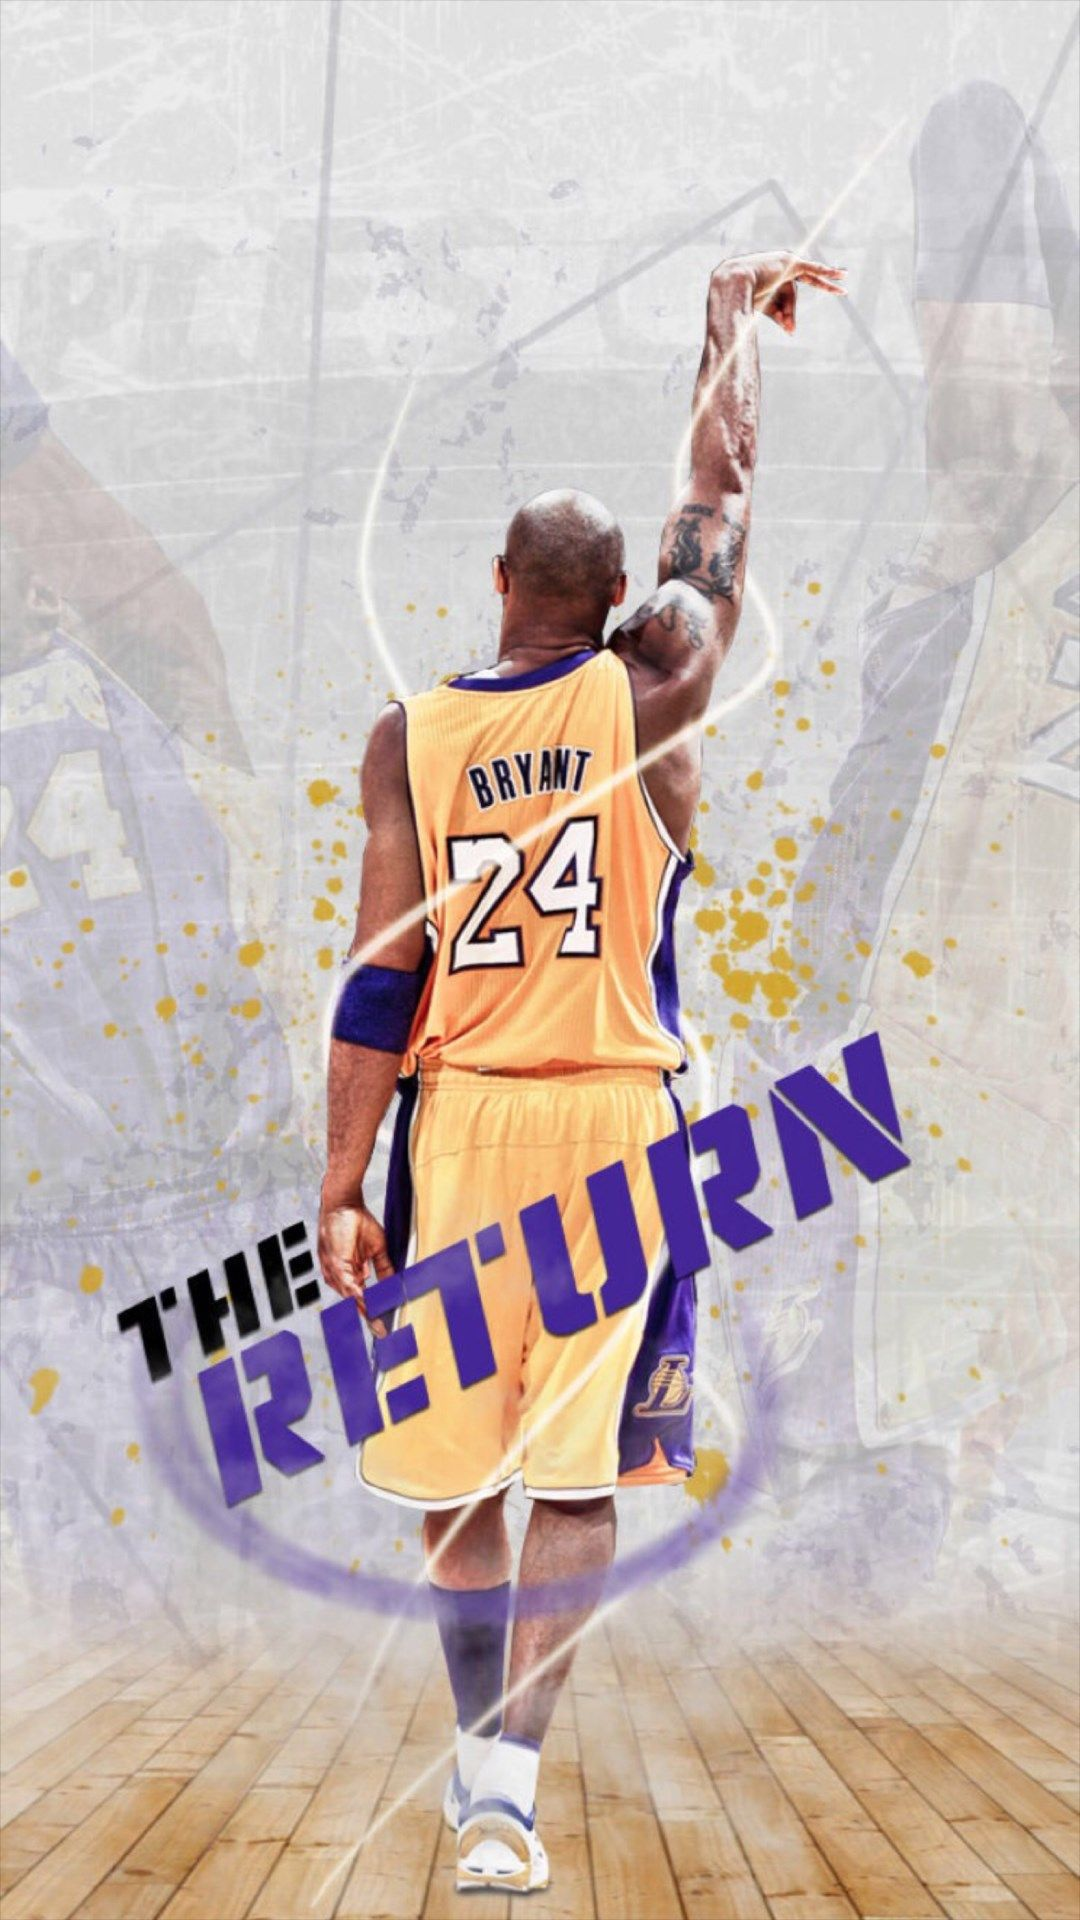 Bryant Kobe Nba Sports Super Star Iphone 6 Plus Wallpaper